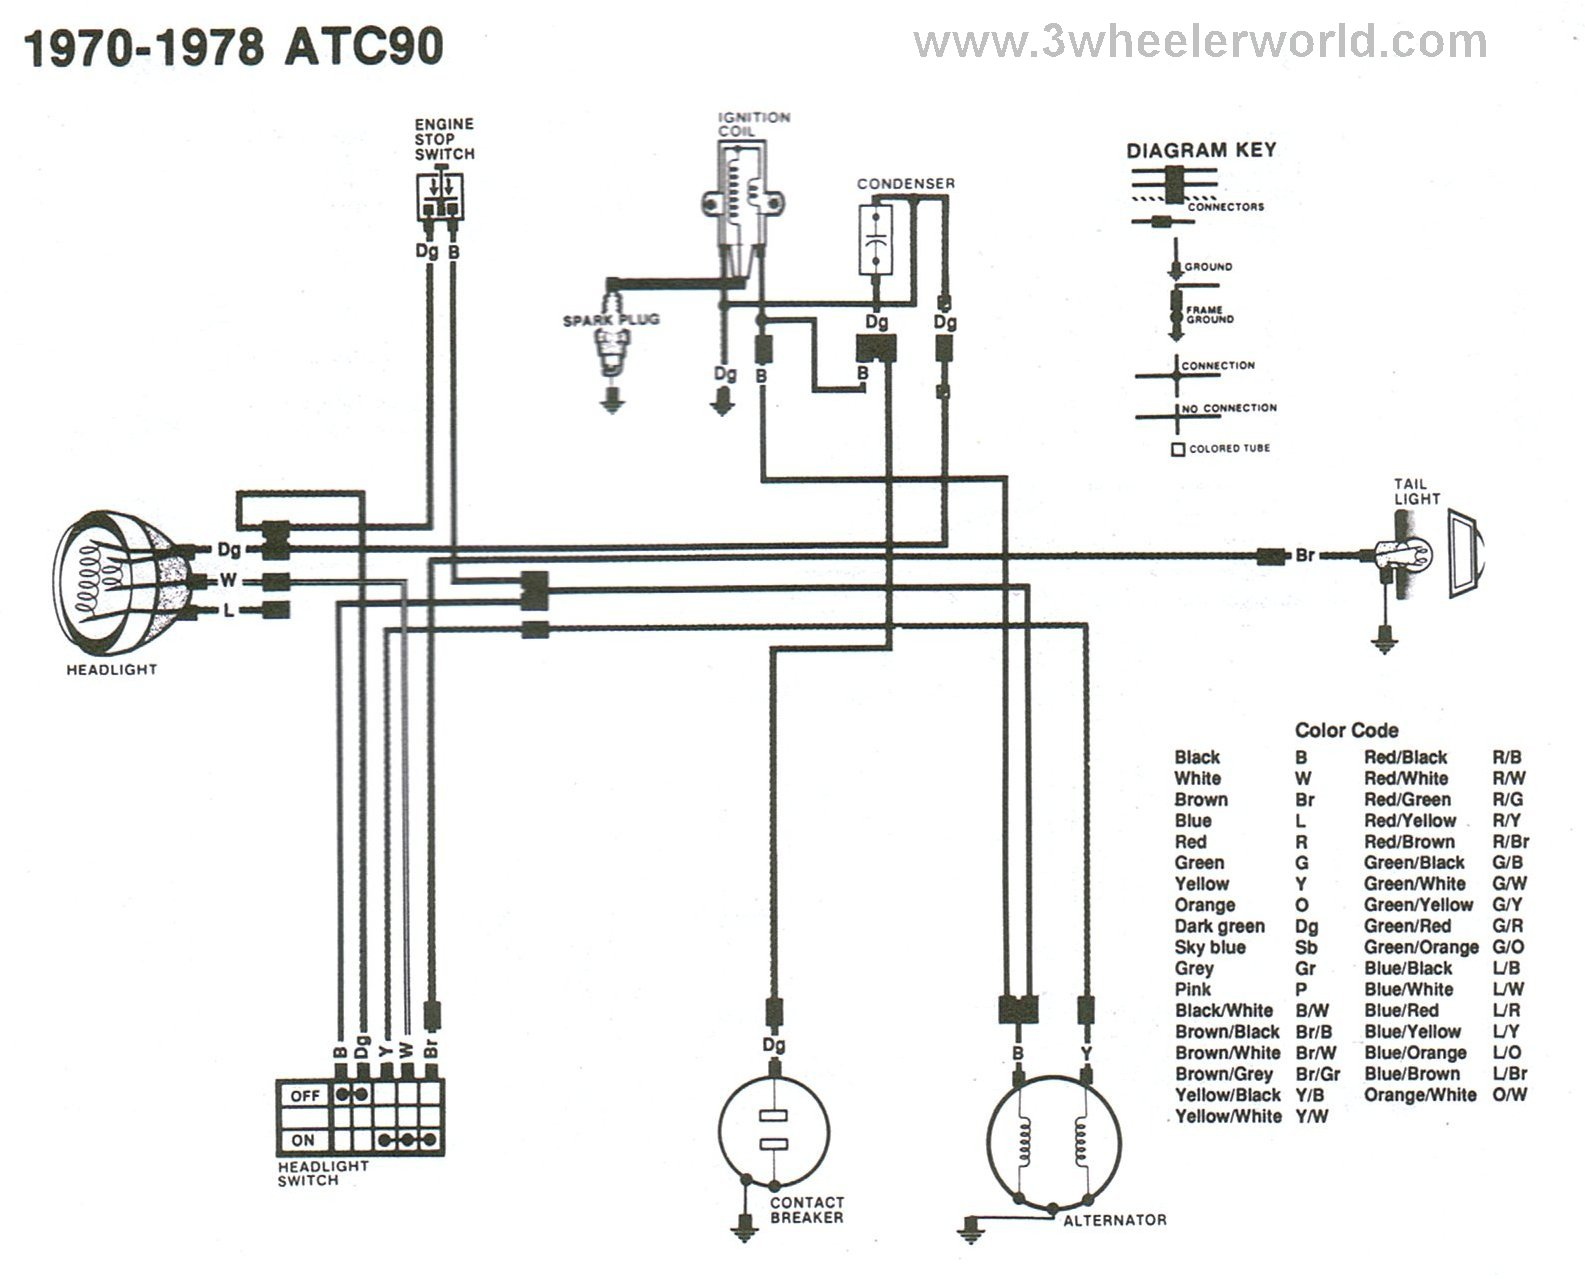 3 WHeeLeR WoRLD-Tech Help Honda Wiring Diagrams3WHeeLeR WoRLD